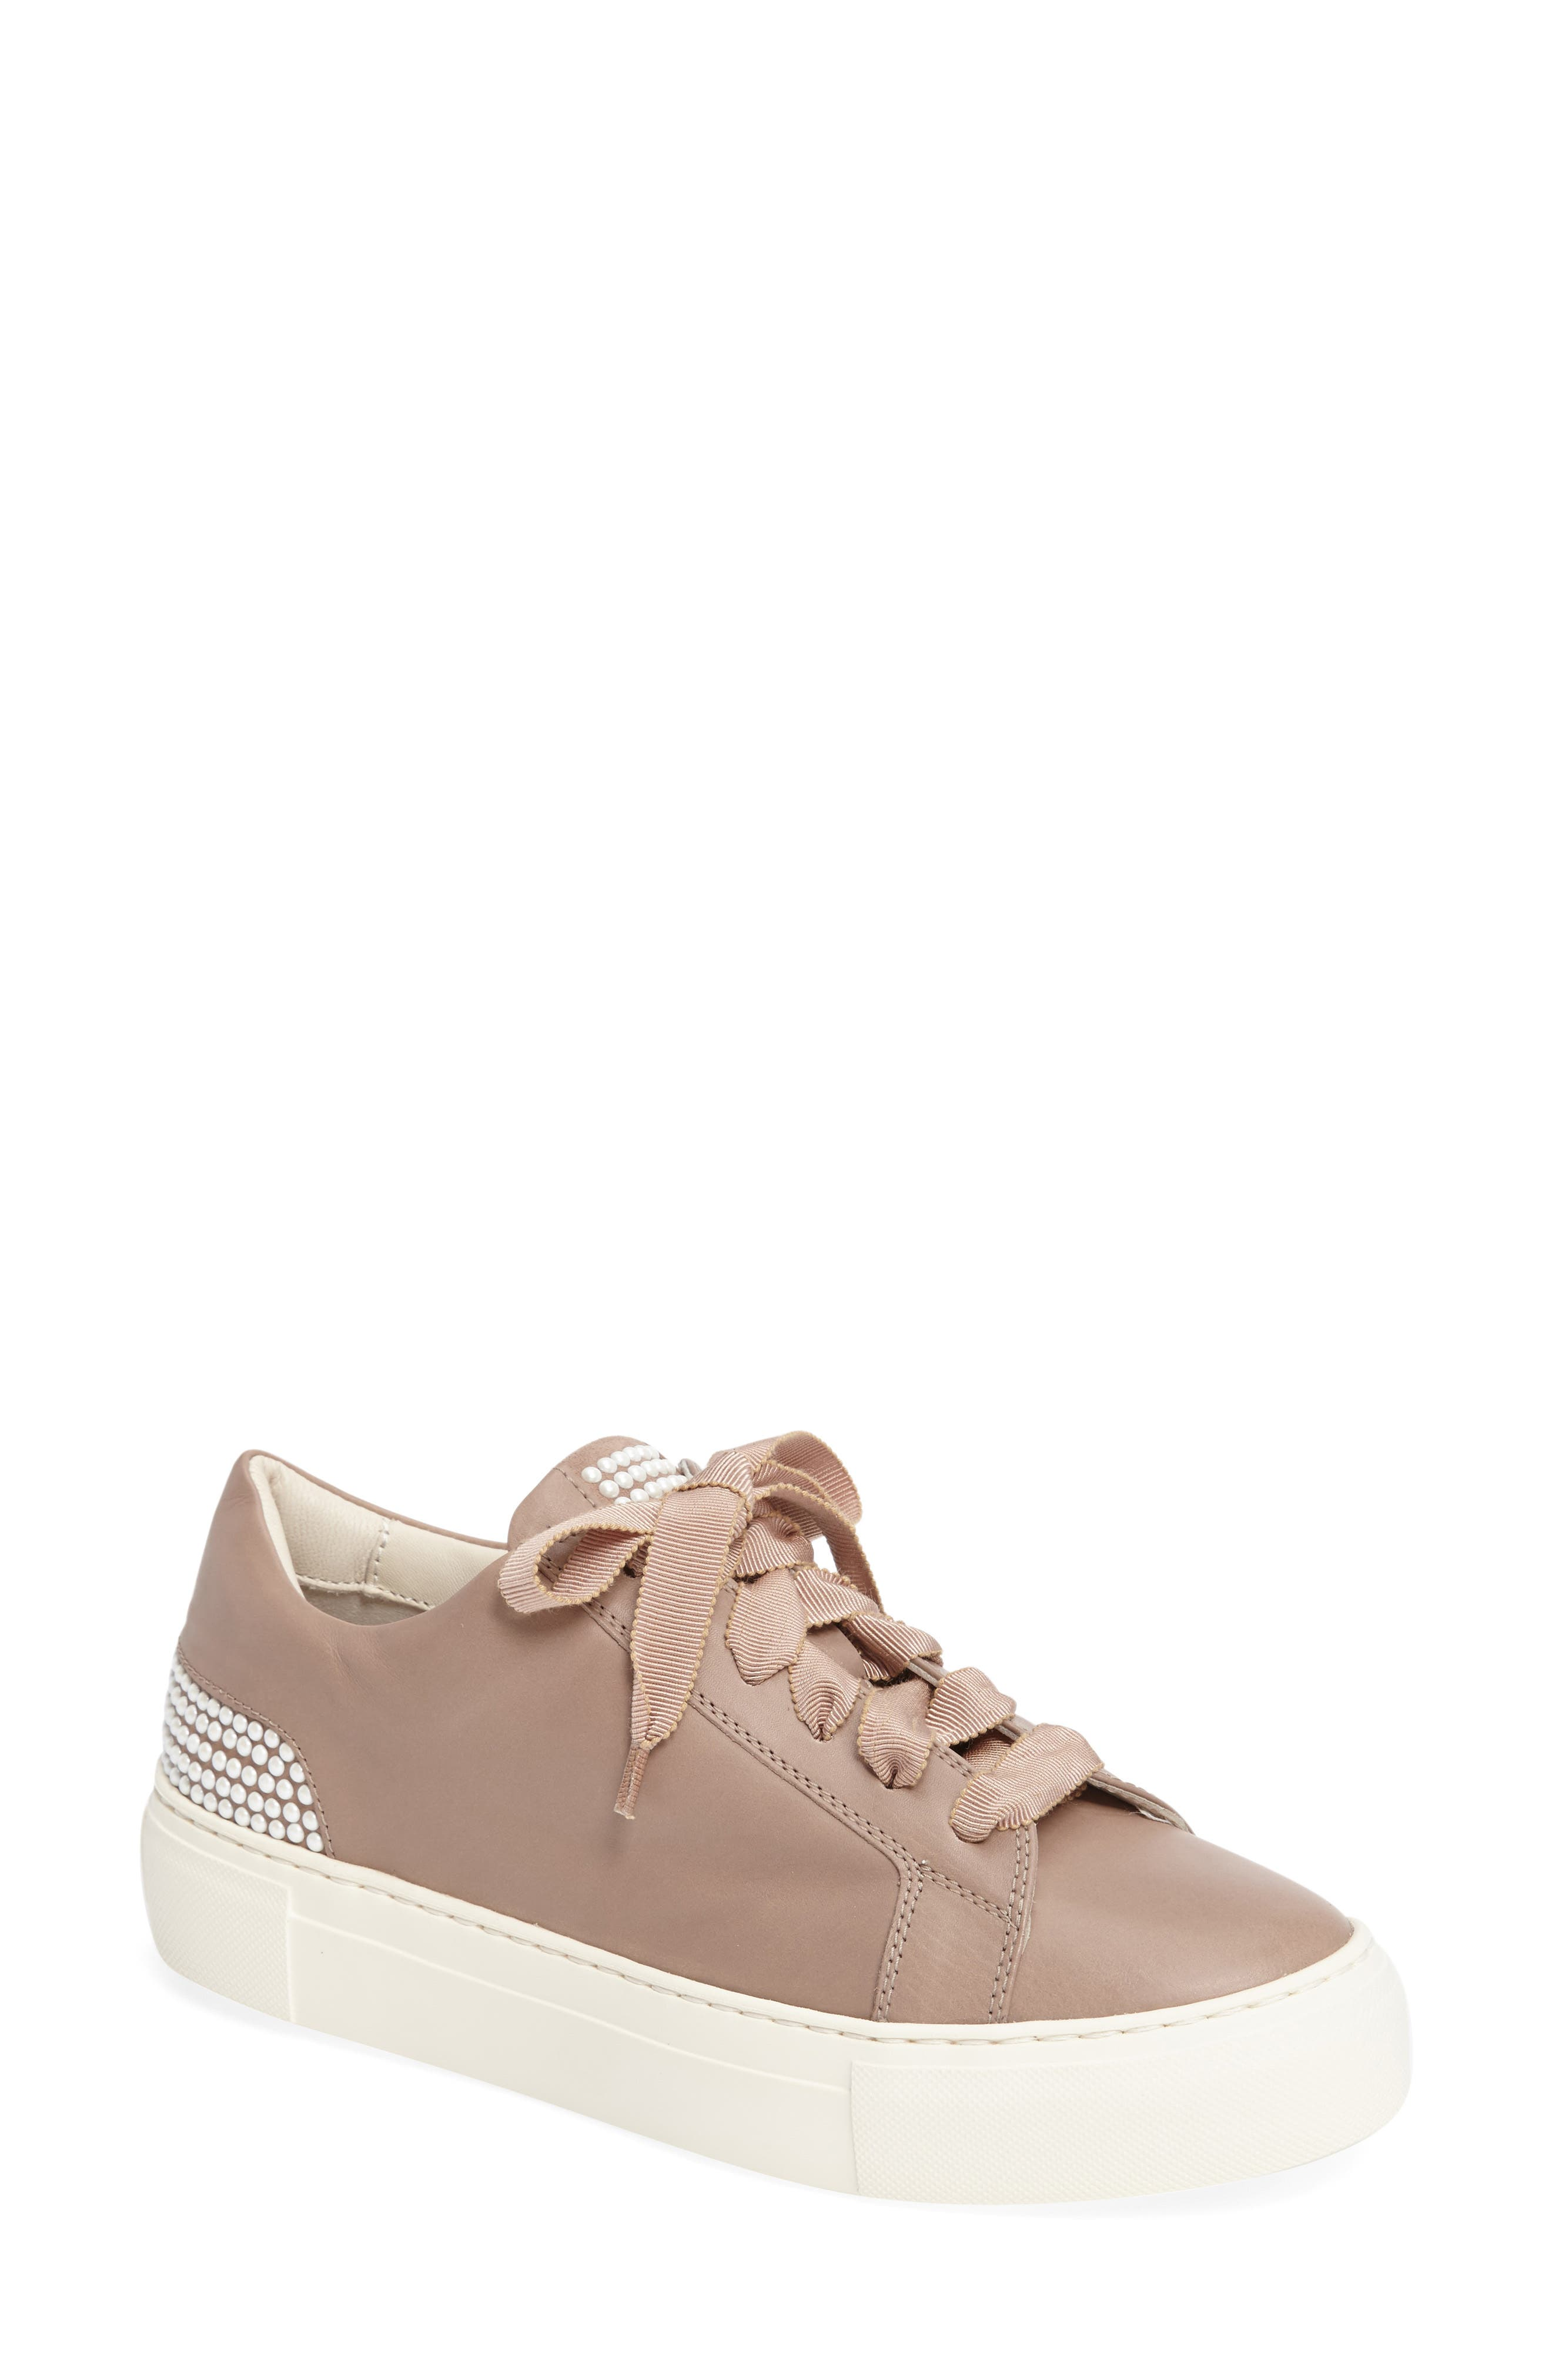 Pearl Sneaker,                             Main thumbnail 1, color,                             Pale Leather